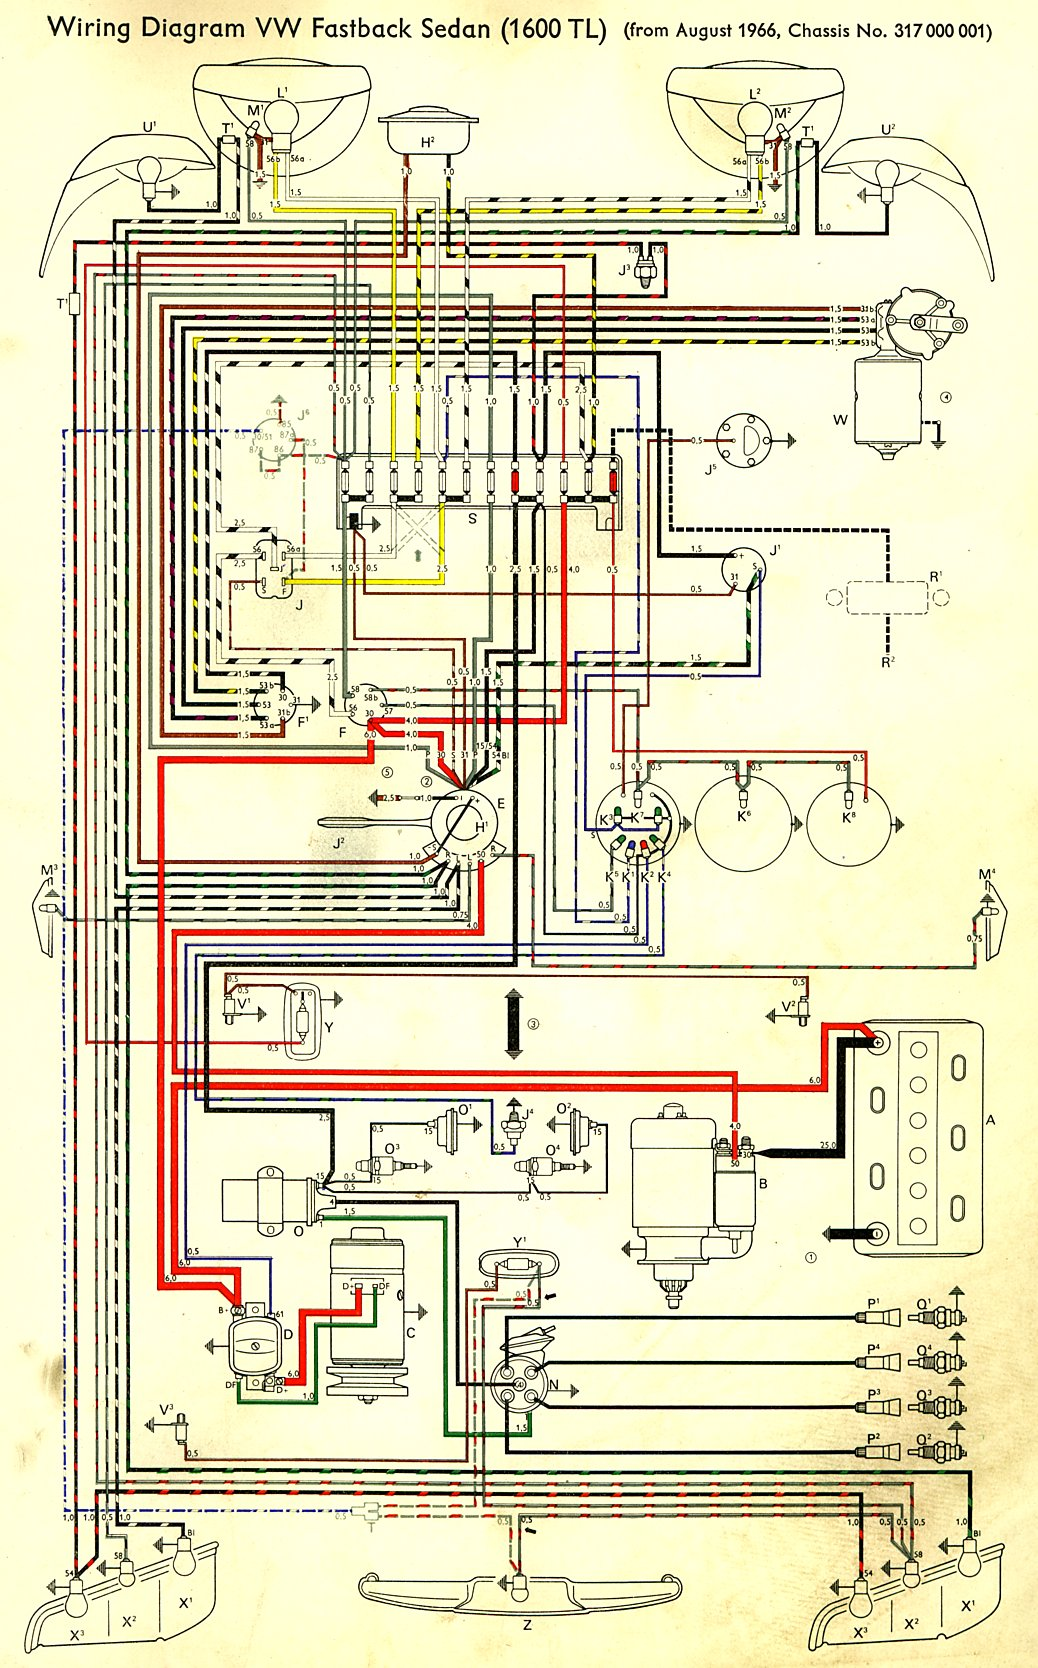 type3_1600TL_67 vw bus wiring diagram 1965 vw bus wiring diagram \u2022 wiring diagrams 1971 vw beetle wiring diagram at panicattacktreatment.co